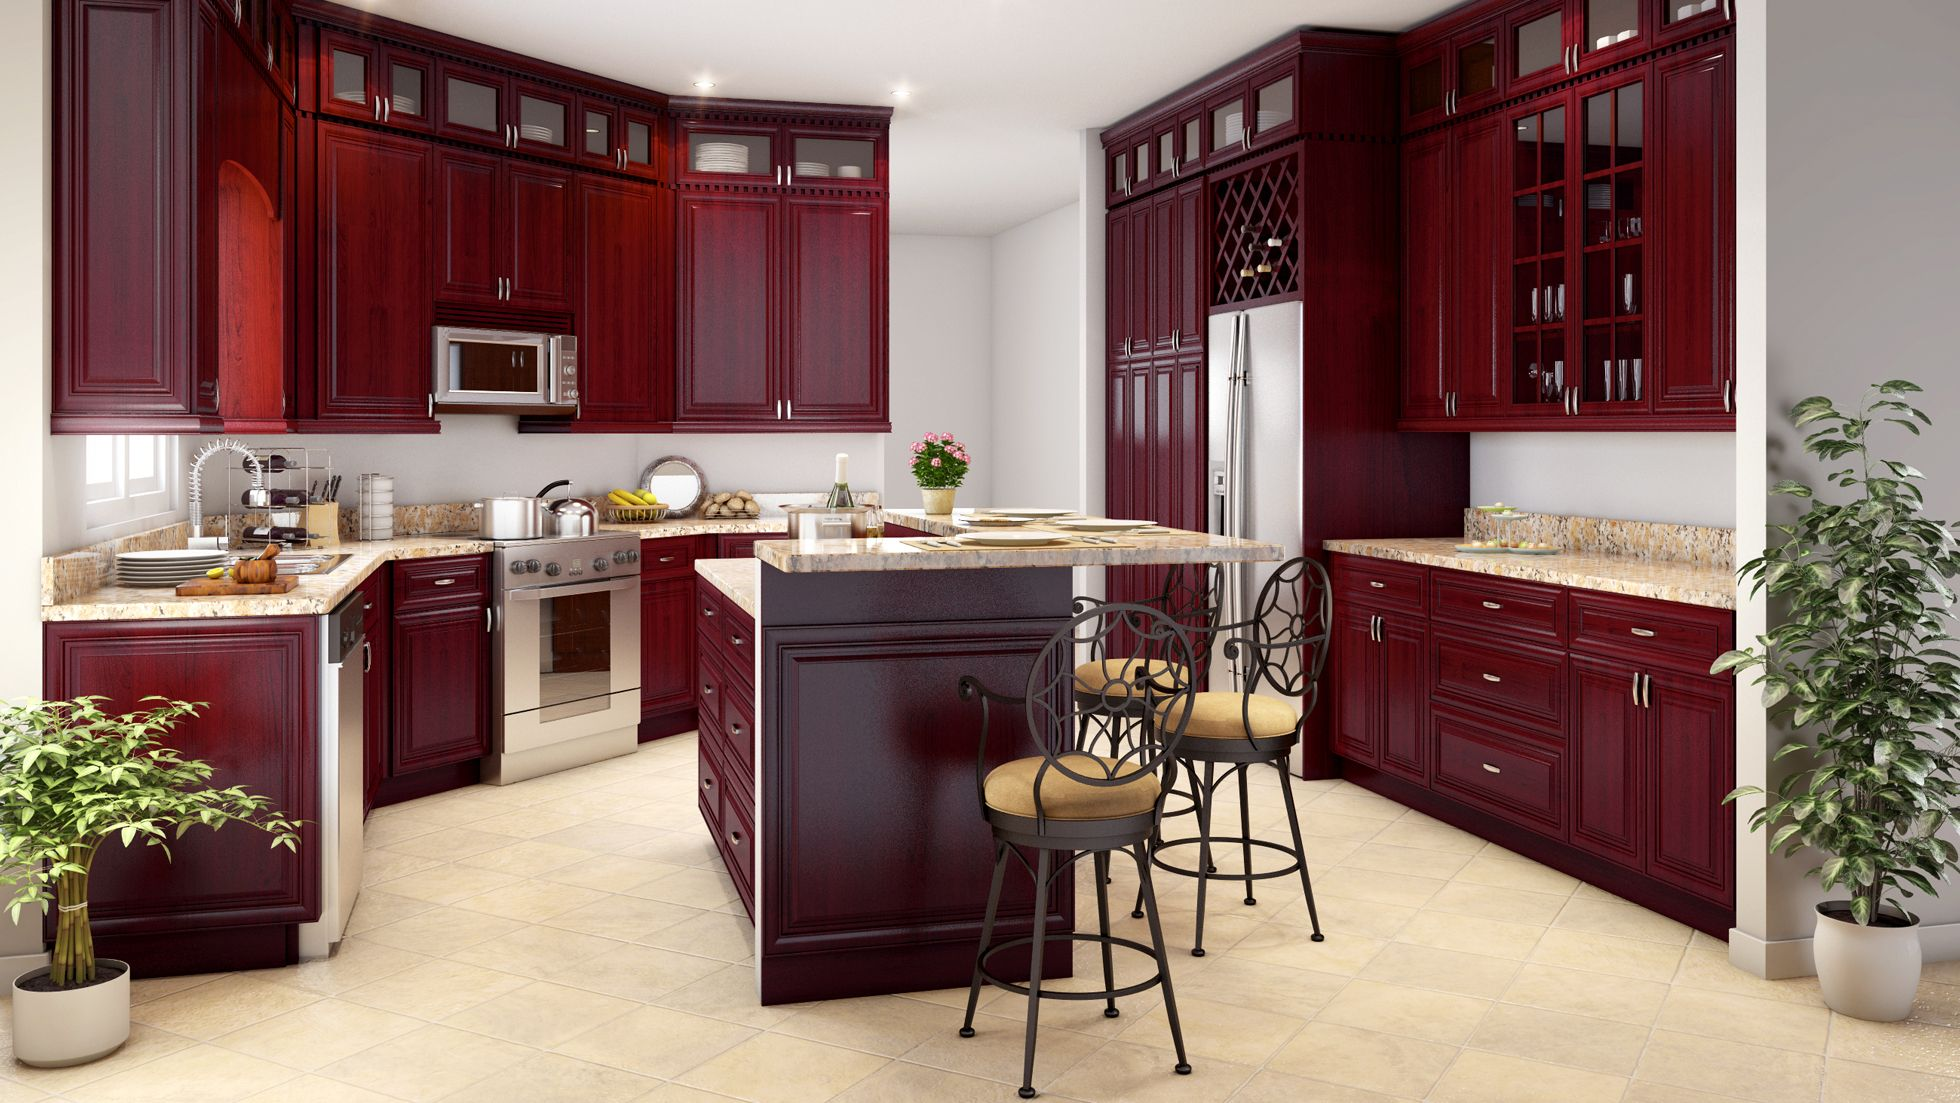 Purchase Bathroom Vanities And Kitchen Cabinets Designed And Manufactured By World S Le With Images Cherry Wood Kitchen Cabinets Glass Kitchen Cabinet Doors Kitchen Design